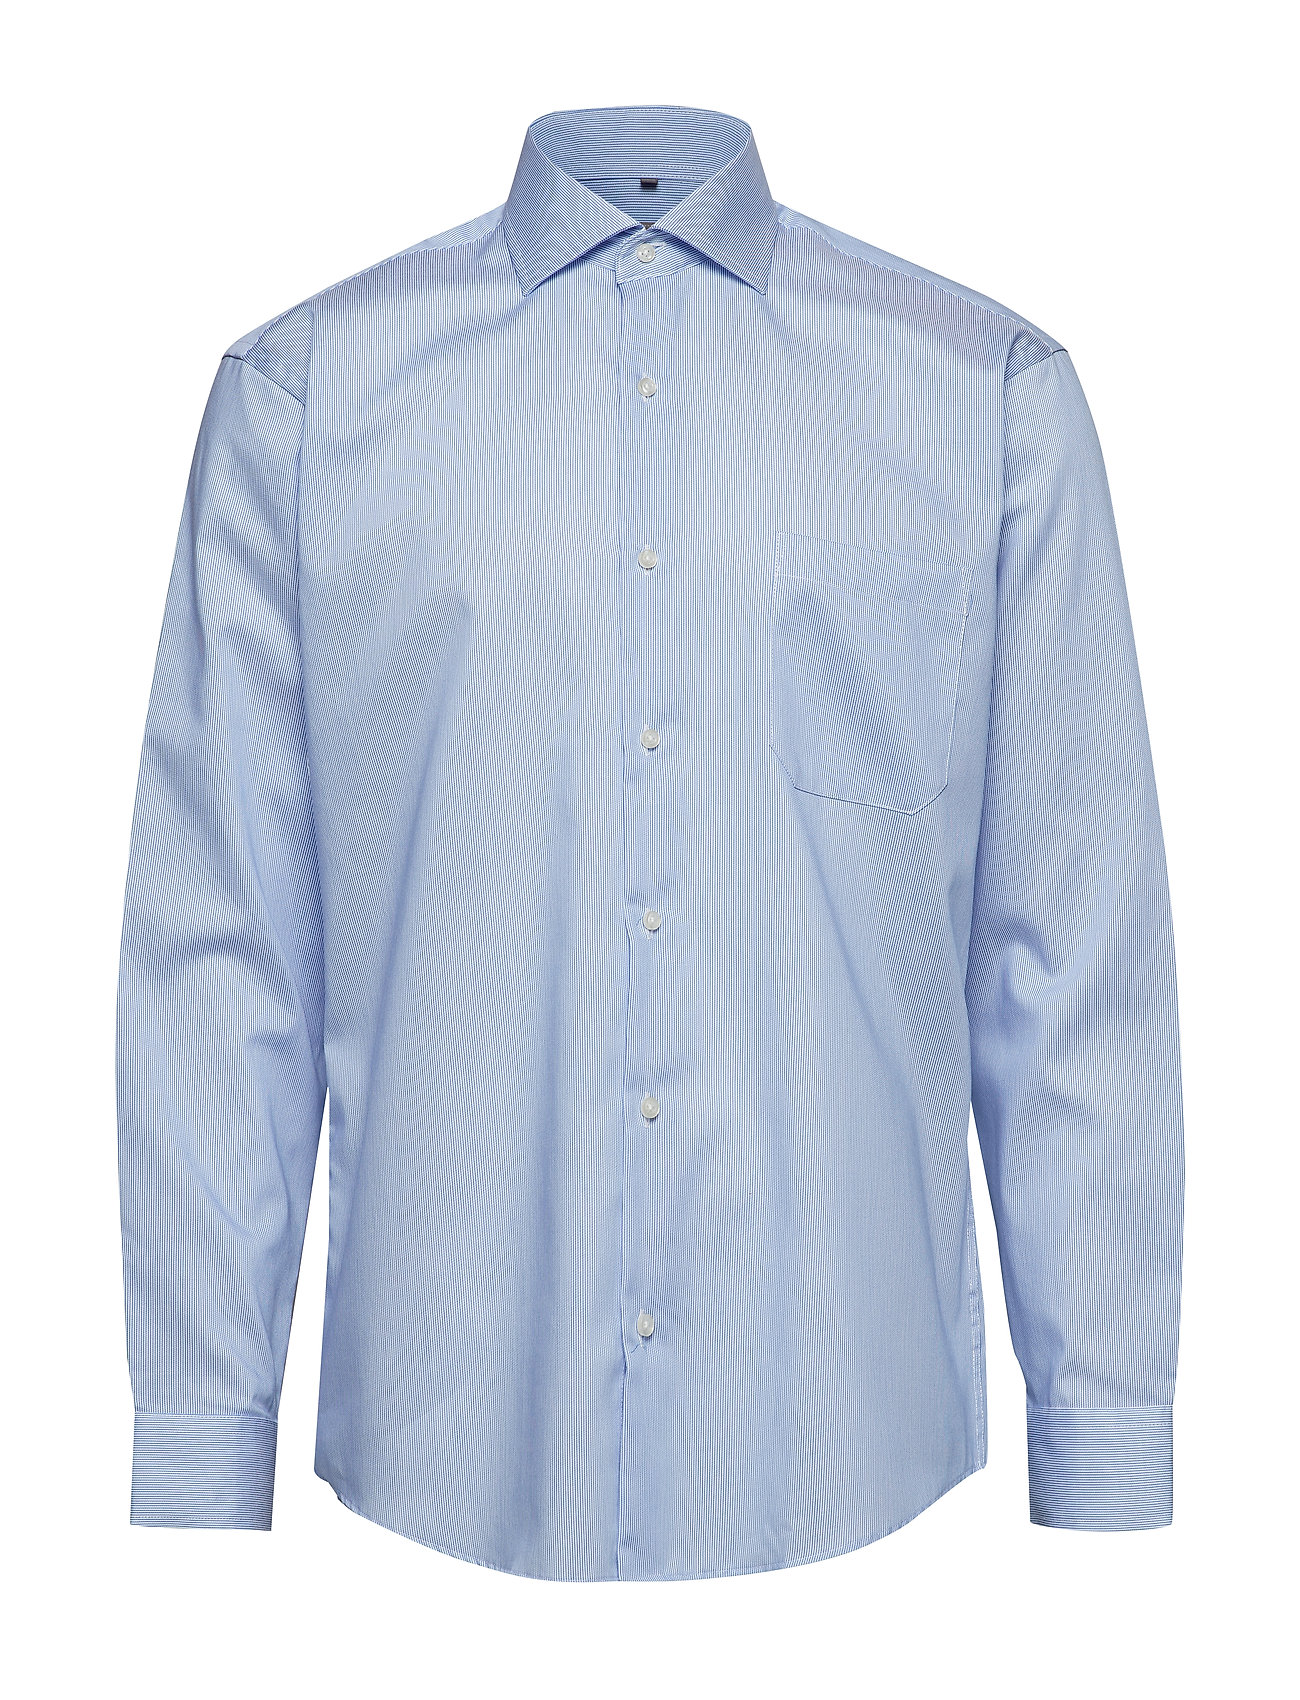 Seven Seas Copenhagen Fine Twill | California - Regular Fit - LIGHT BLUE